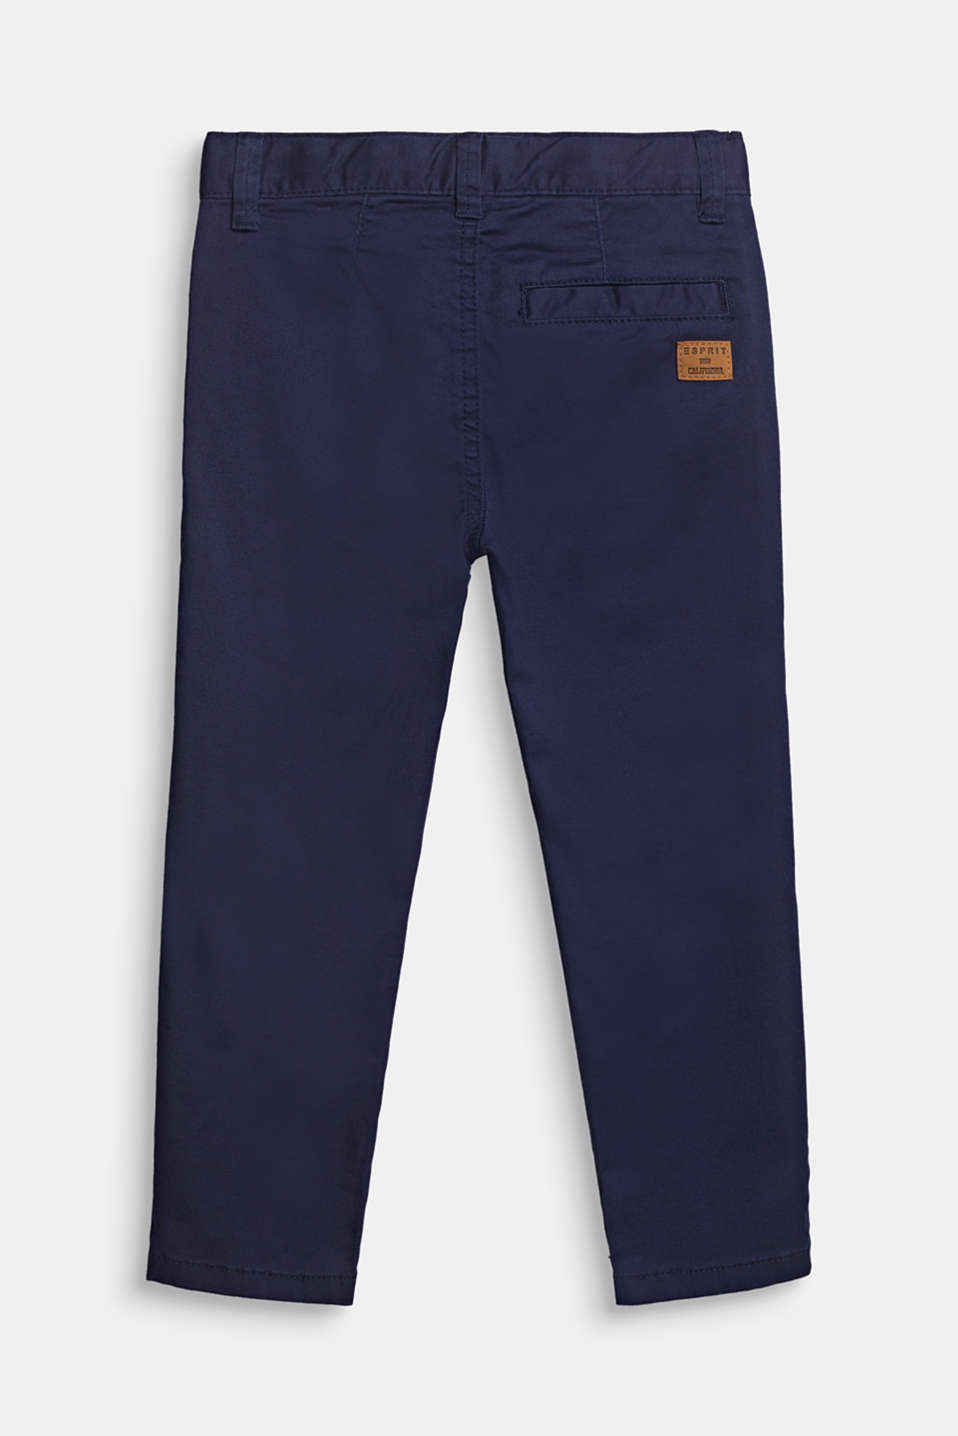 Chinos with adjustable waistband, 100% cotton, MIDNIGHT BLUE, detail image number 0